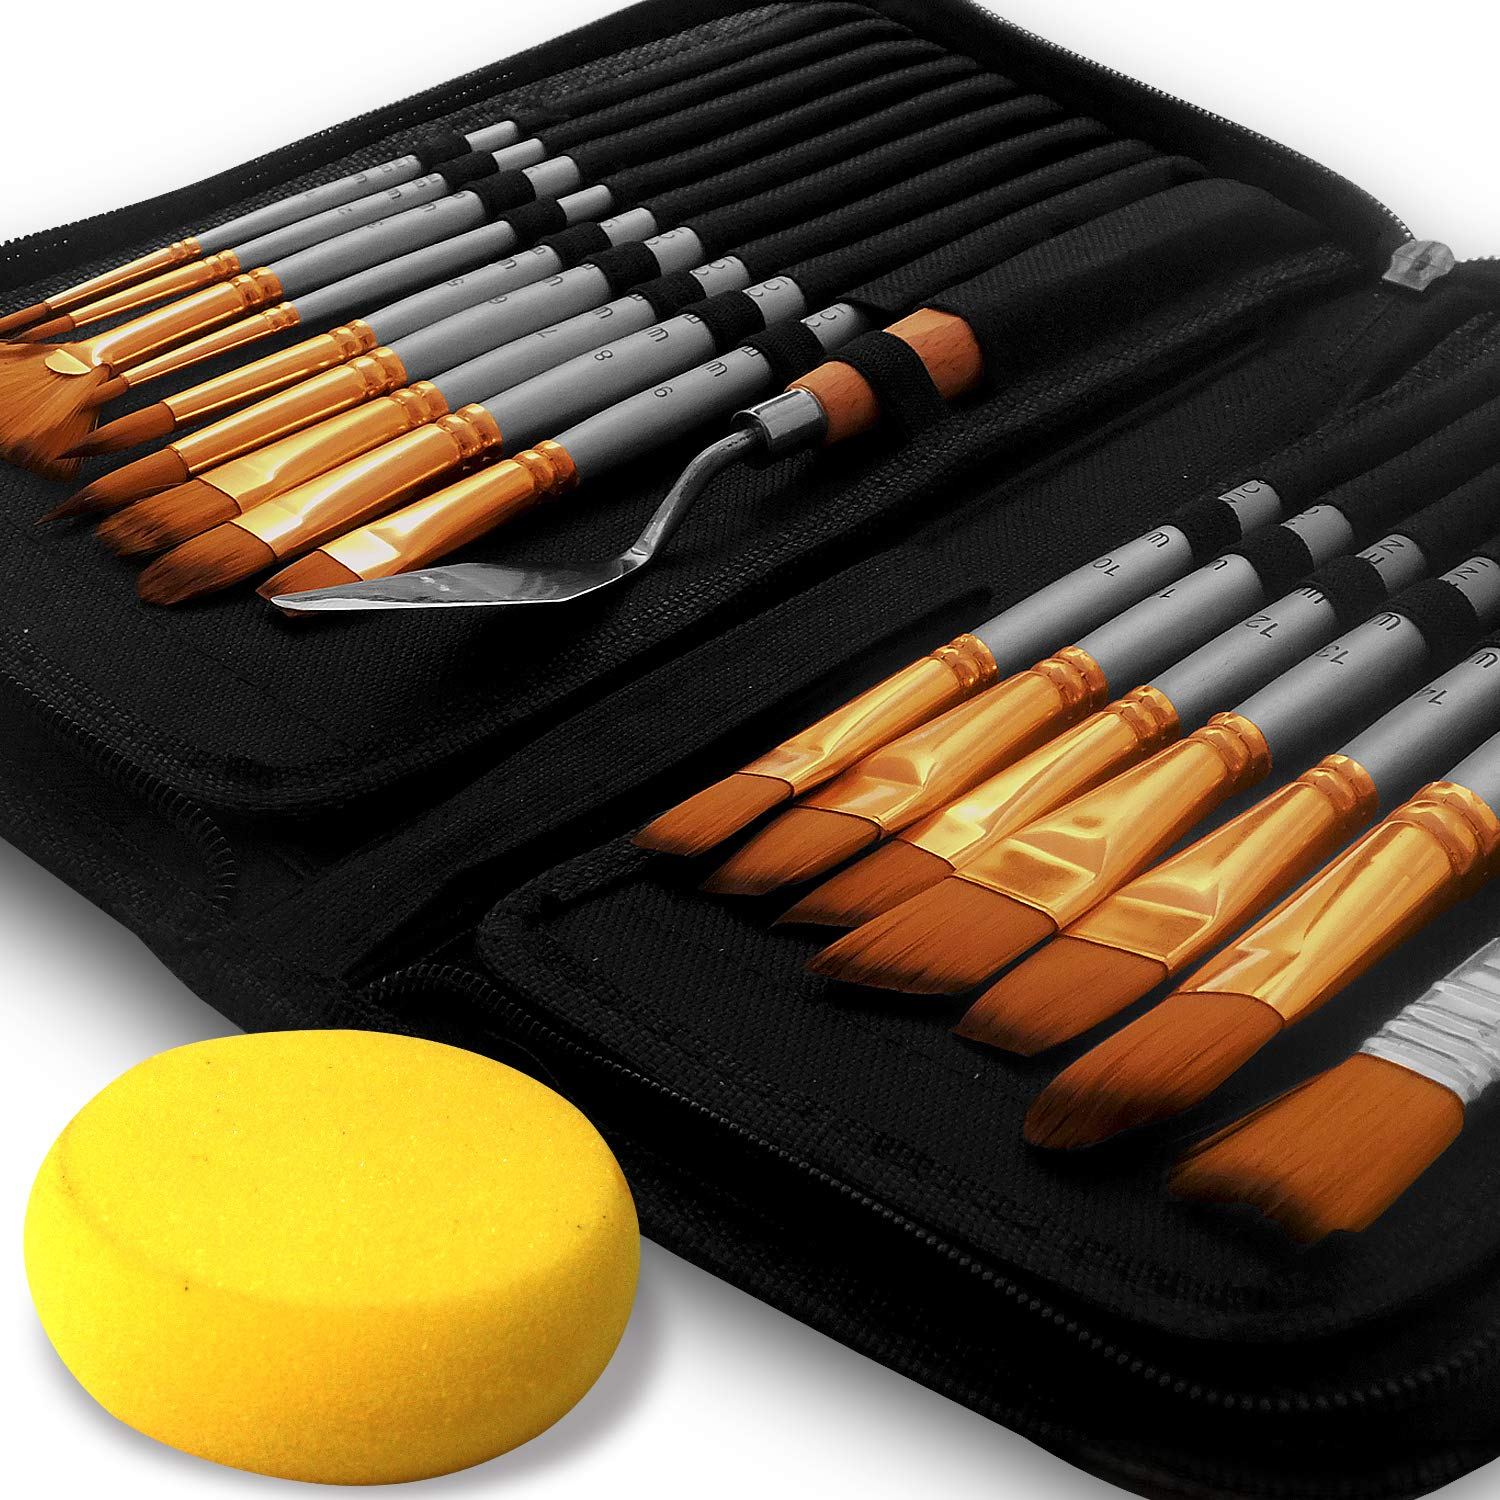 Artist Paint Brush Set - 16 Different Shapes & Sizes - Free Painting Knife & Watercolor Sponge - No Shed Bristles - Wood Handles - for Creative Body Paint, Acrylics & Oil by Benicci